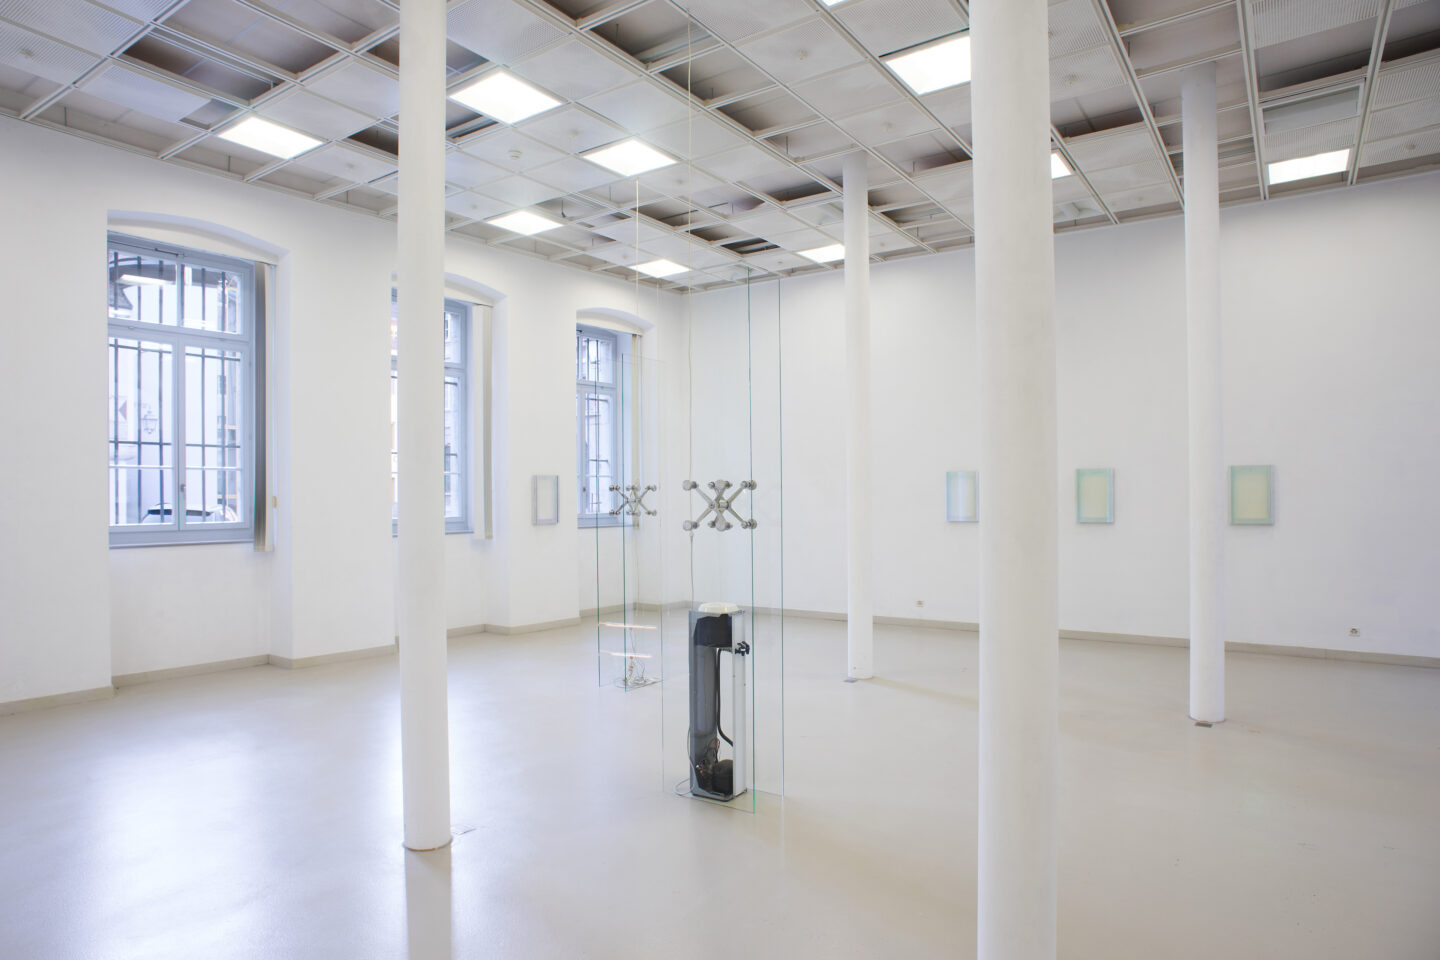 Exhibition View Manuel Burgener Soloshow «Disbelief» at EAC Les Halles, Porrentruy, 2019 / Courtesy: the artist and EAC Les Halles